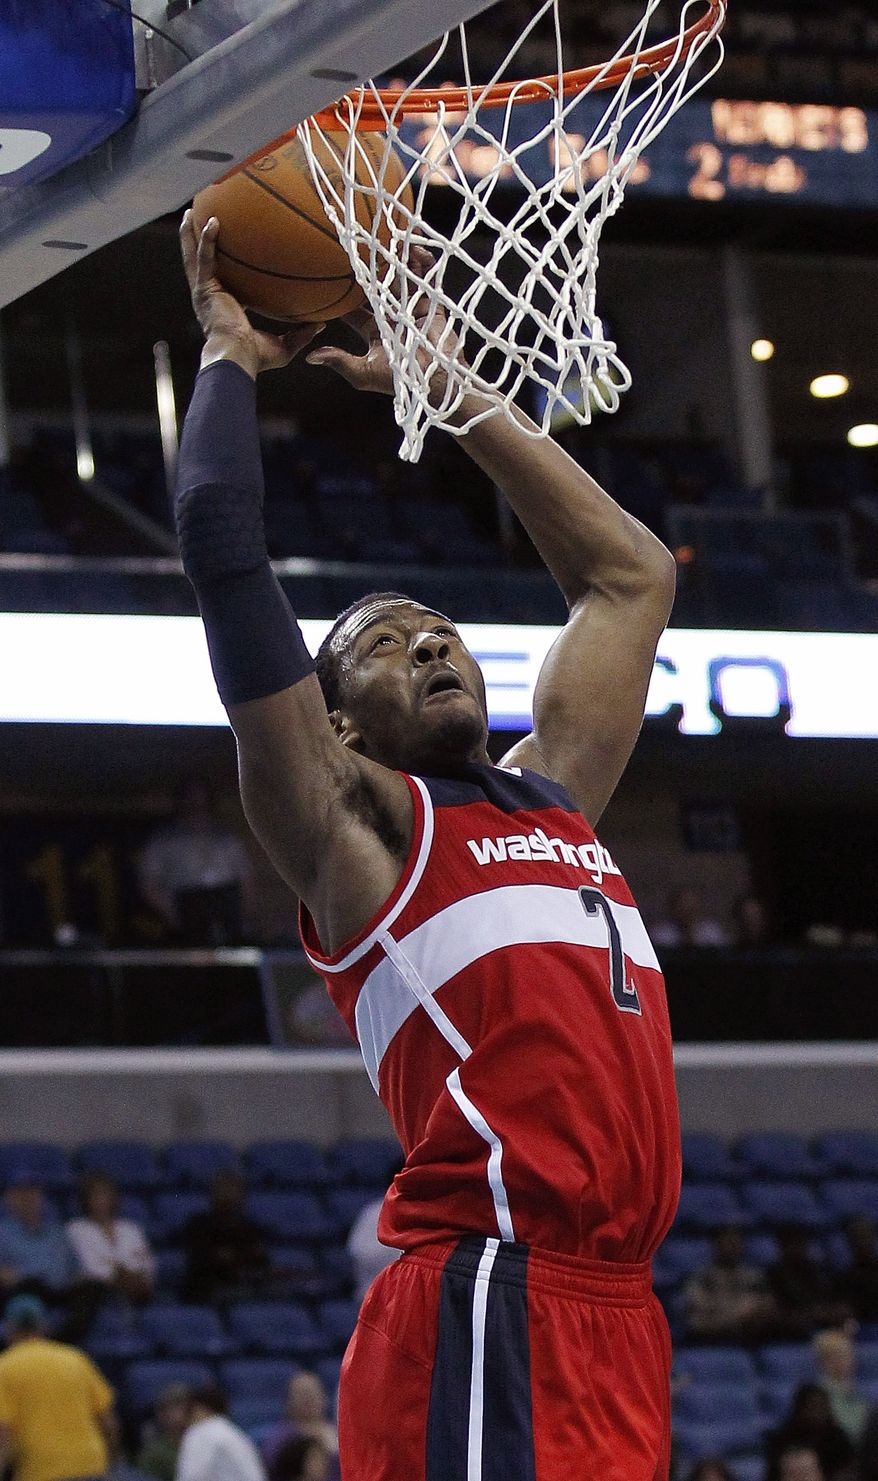 Washington Wizards point guard John Wall scores in the second half against the New Orleans Hornets in New Orleans, Thursday, March 15, 2012. The Wizards defeated the Hornets 99-89. (AP Photo/Bill Haber)